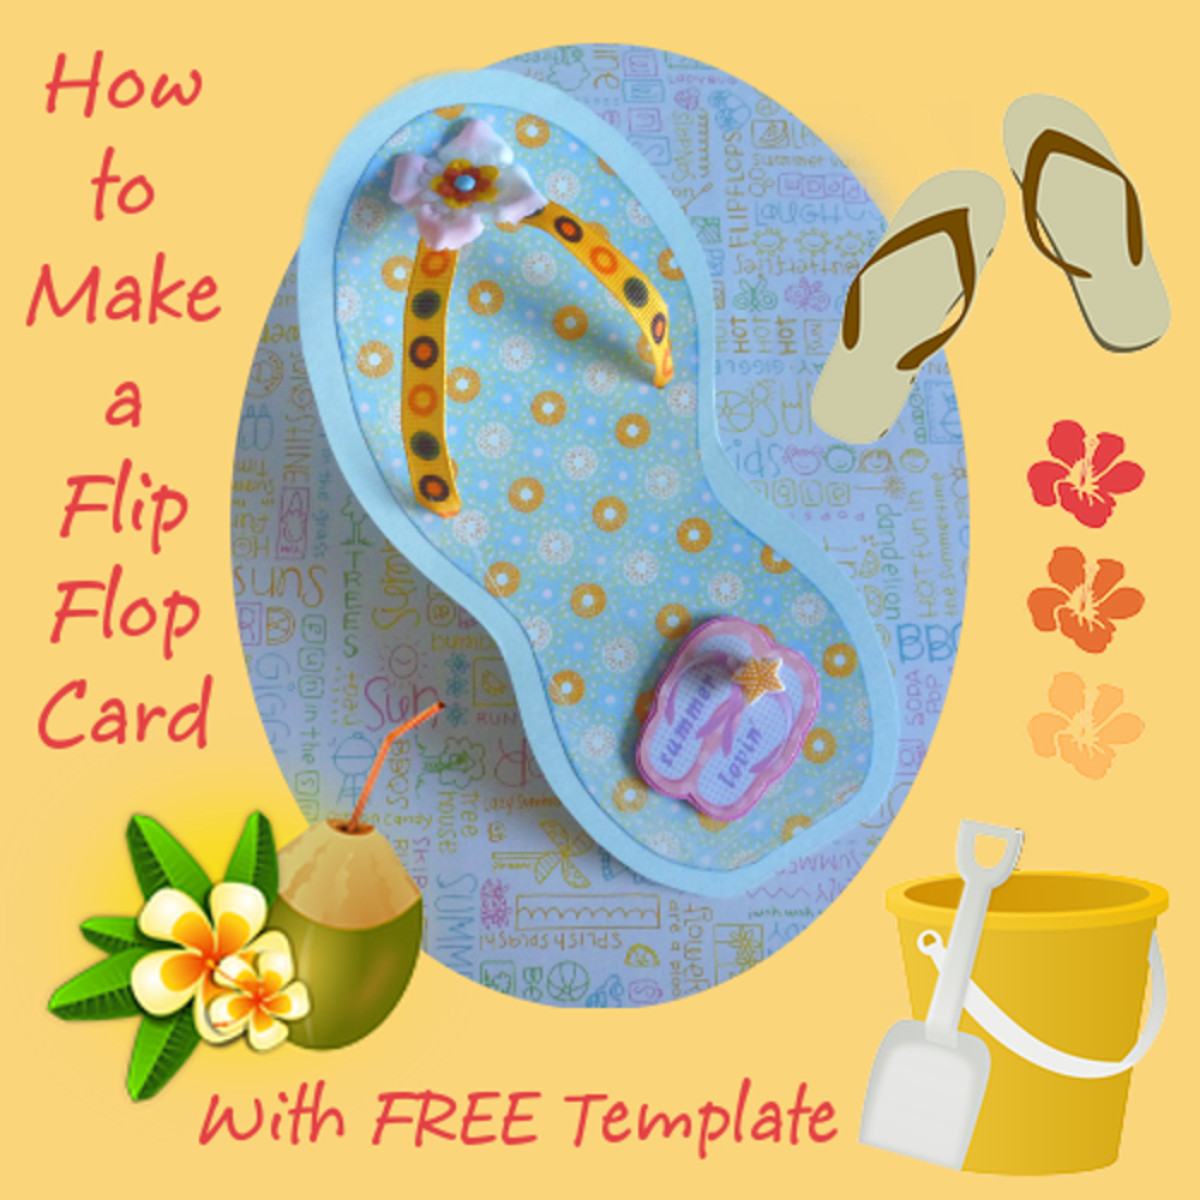 photograph regarding Flip Flop Template Printable named How toward Produce a Transform Flop Card With Template Holidappy